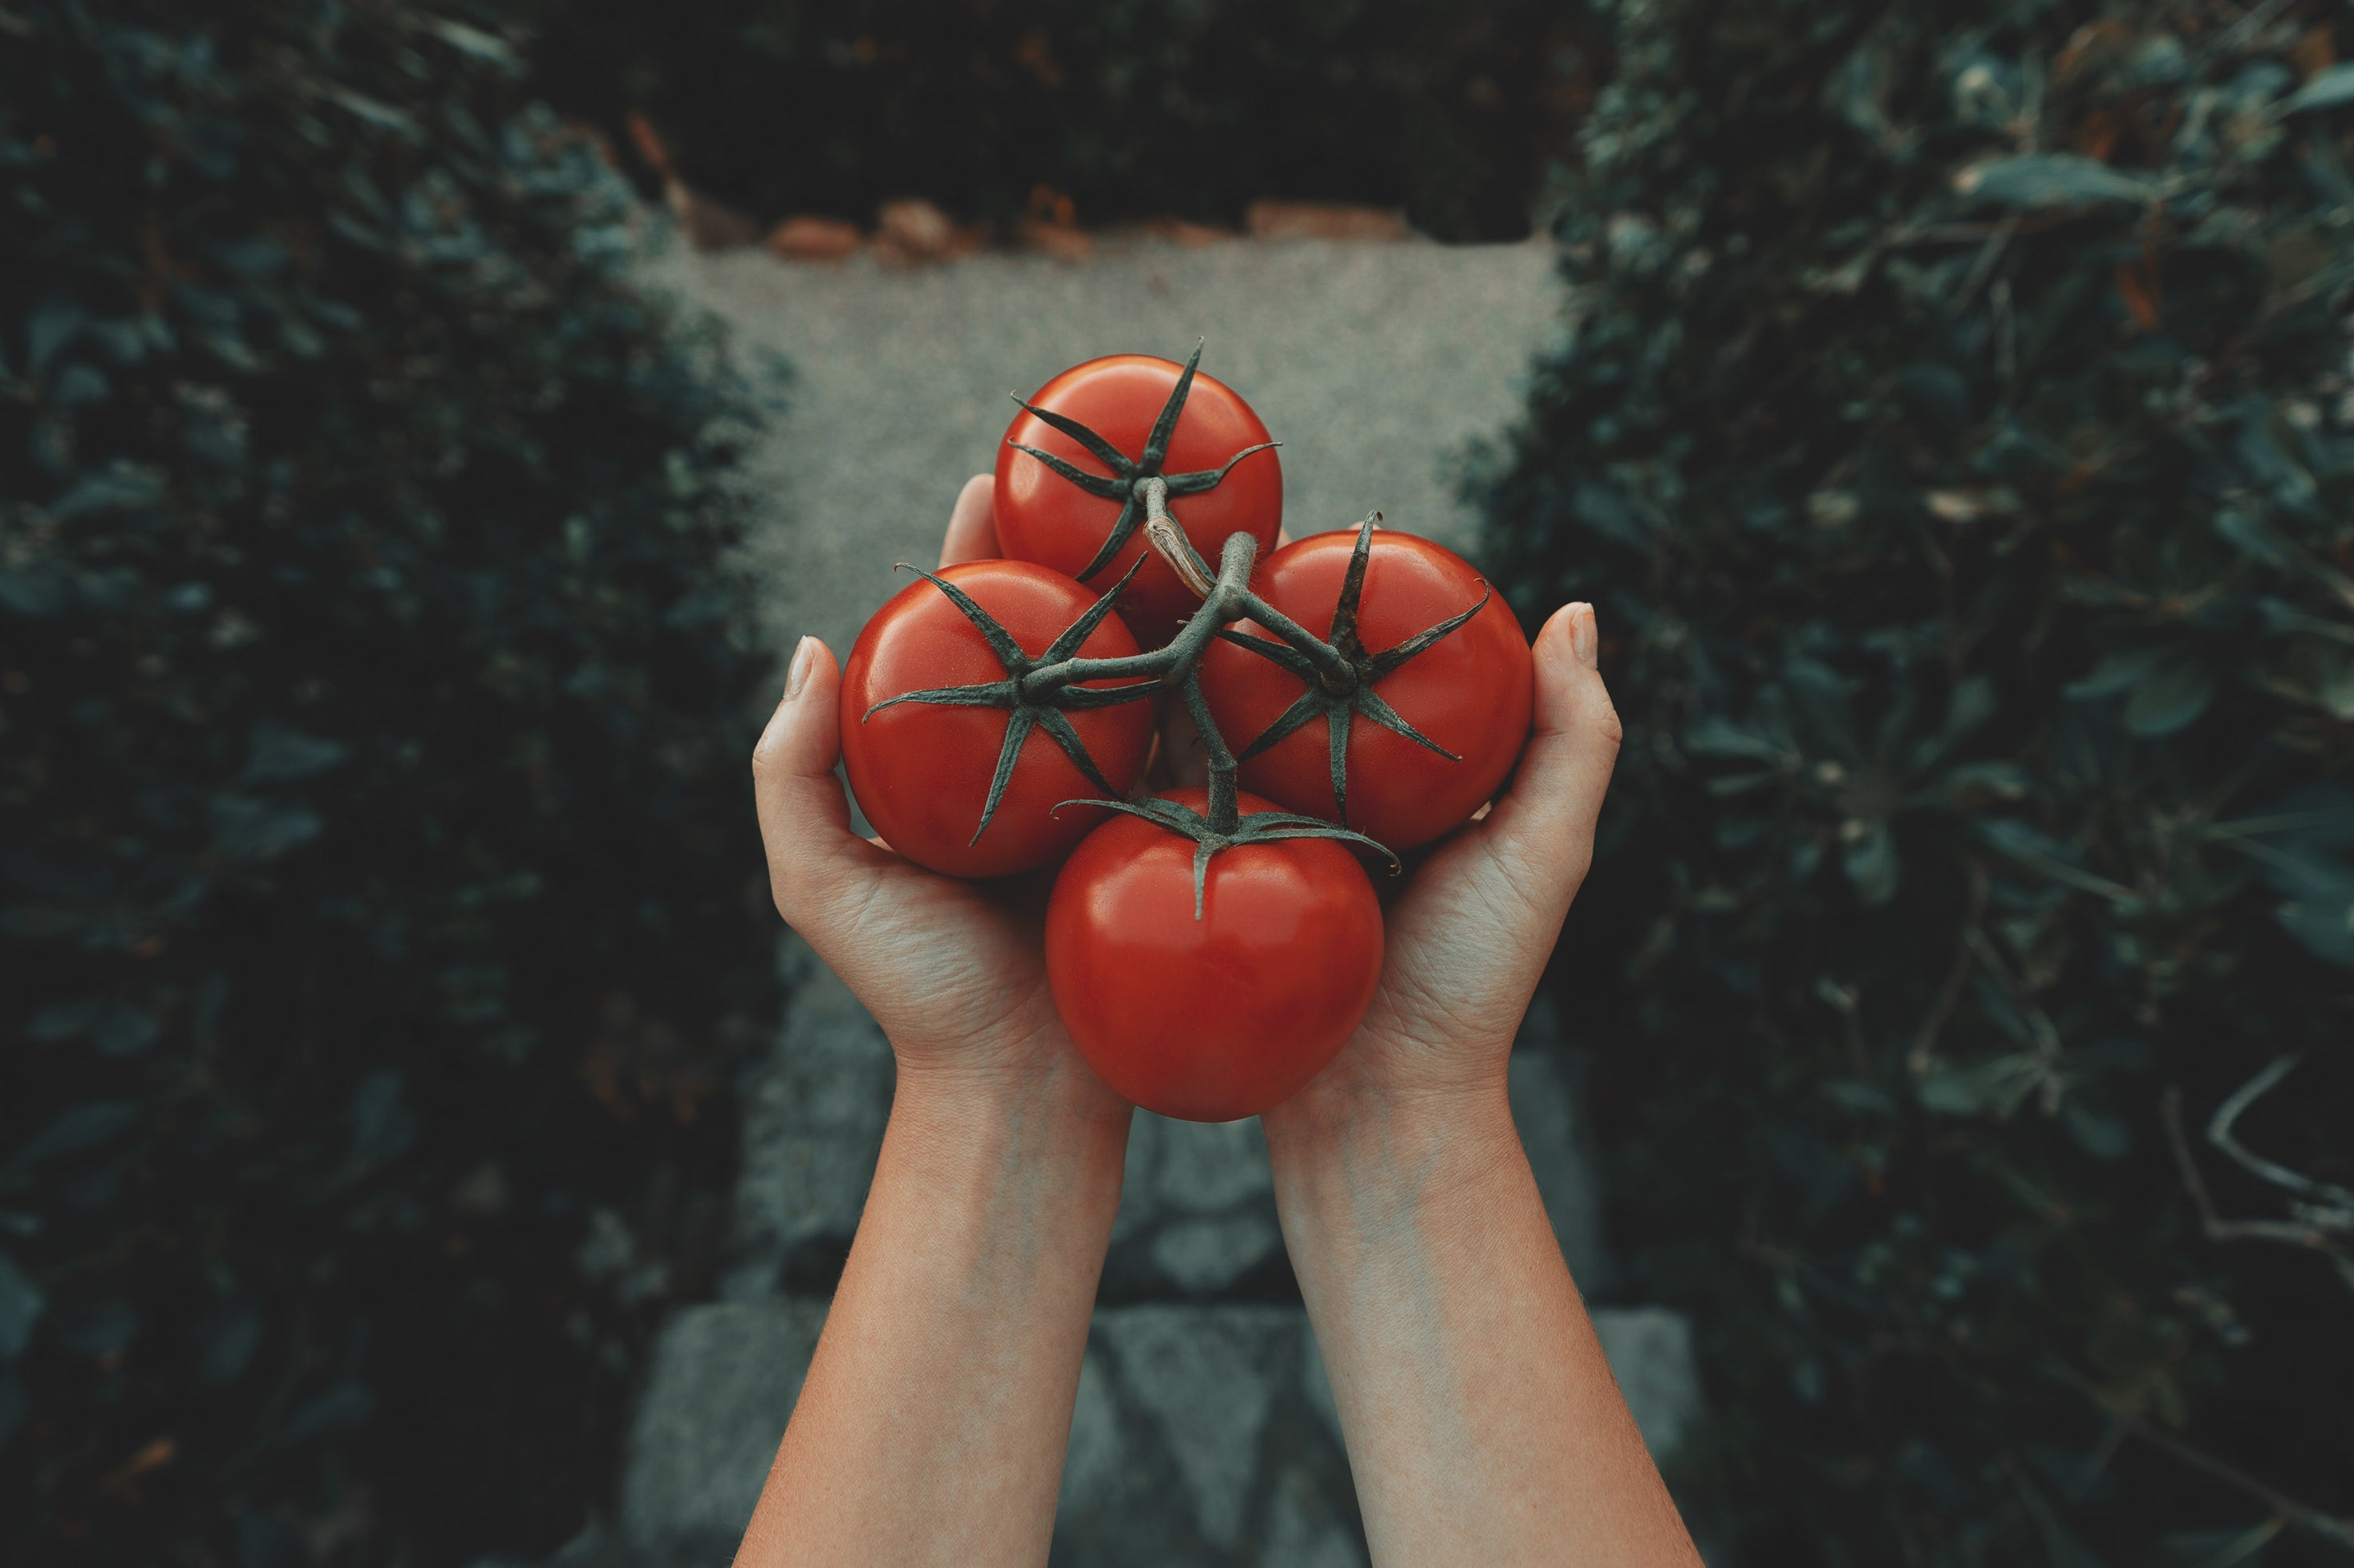 buy organic tomato online london uk